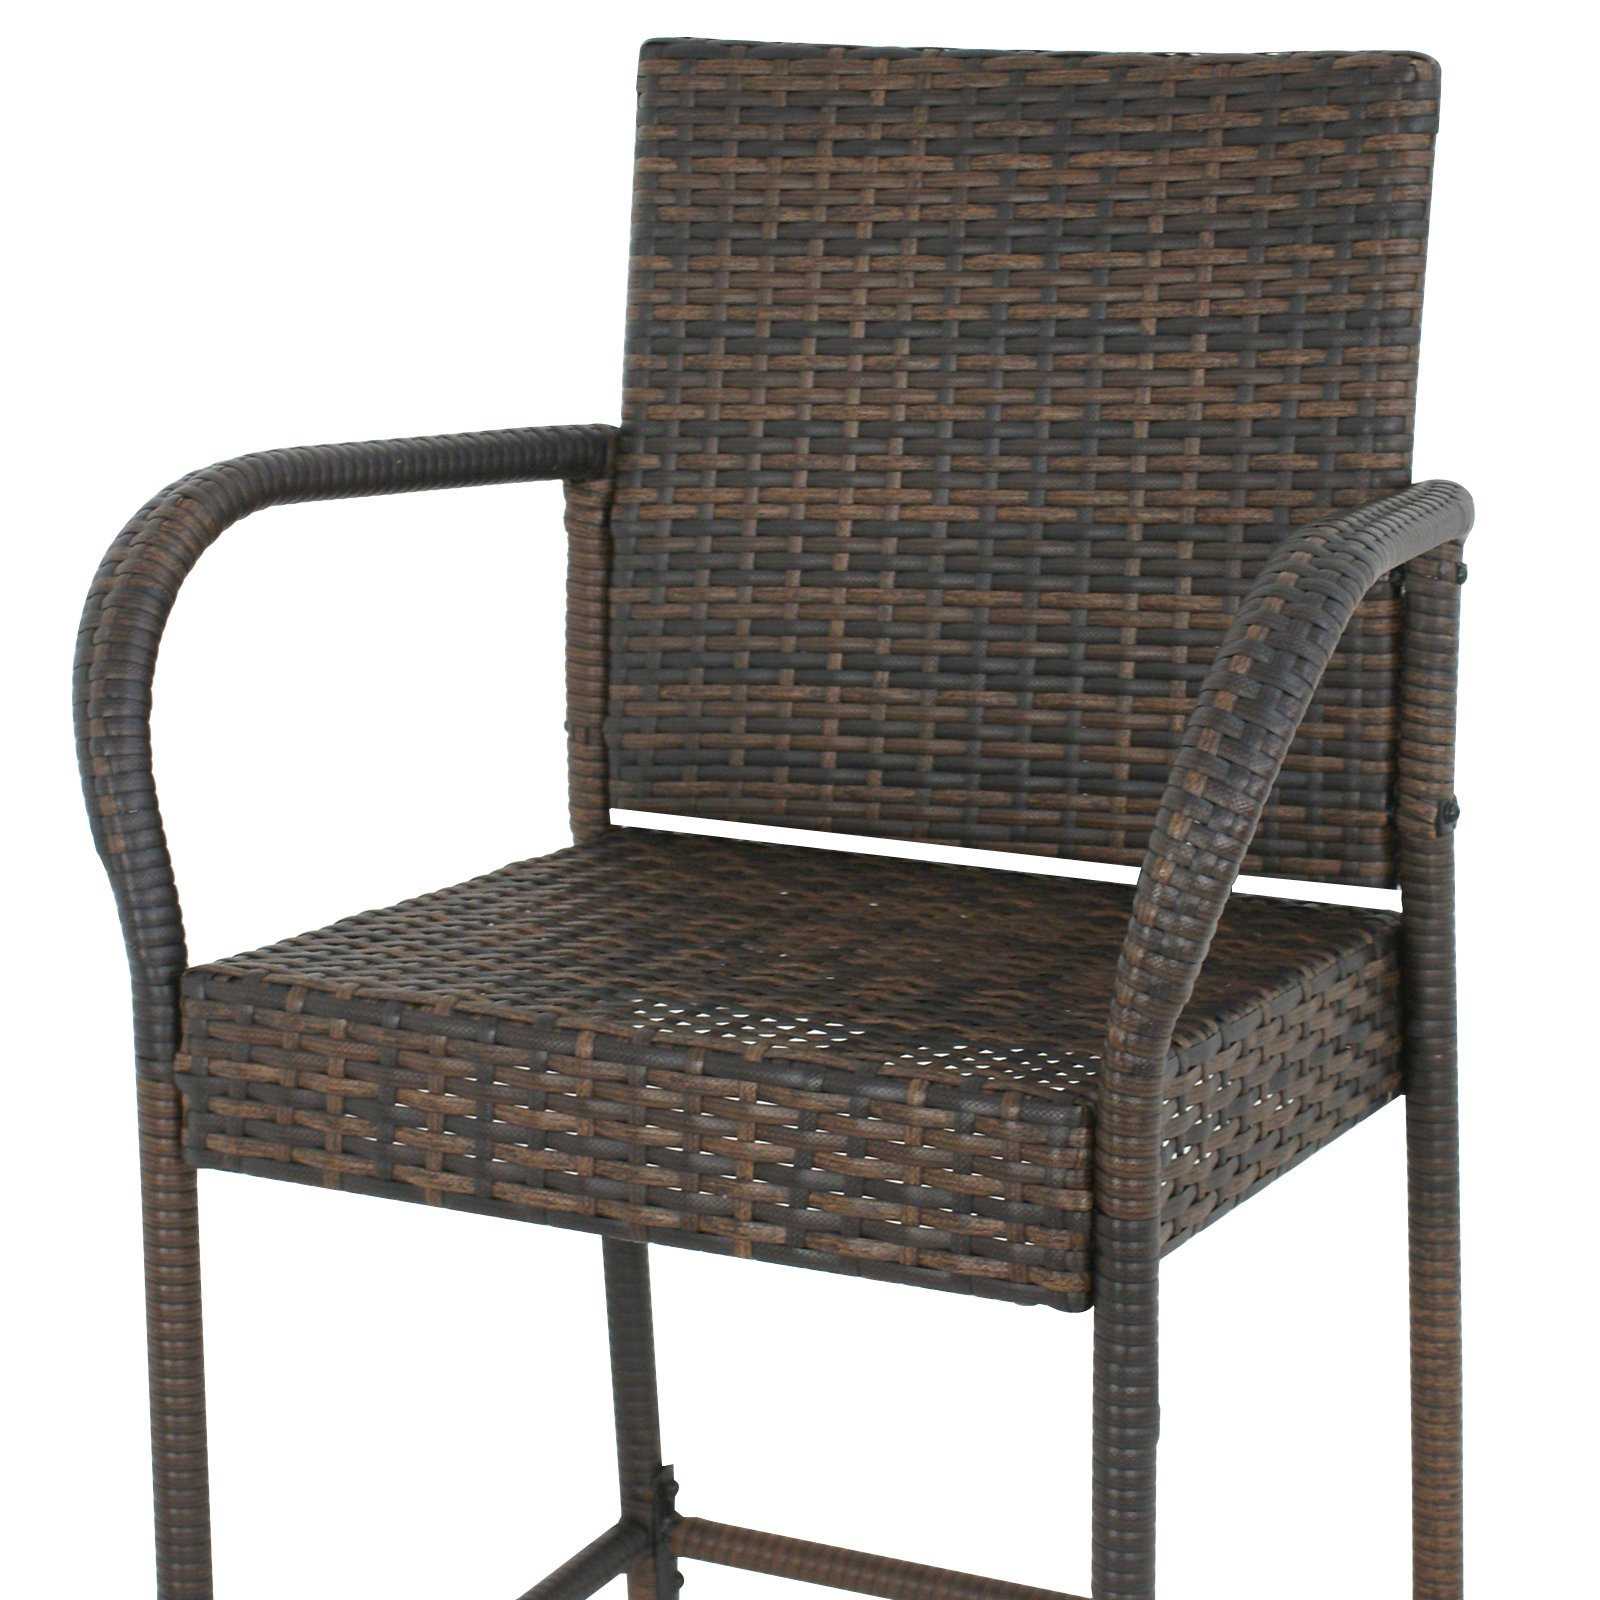 SUPER DEAL Wicker Bar Stool Outdoor Backyard Rattan Chair Patio Furniture Chair w/Iron Frame, Armrest and Footrest, Set of 4 by SUPER DEAL (Image #7)